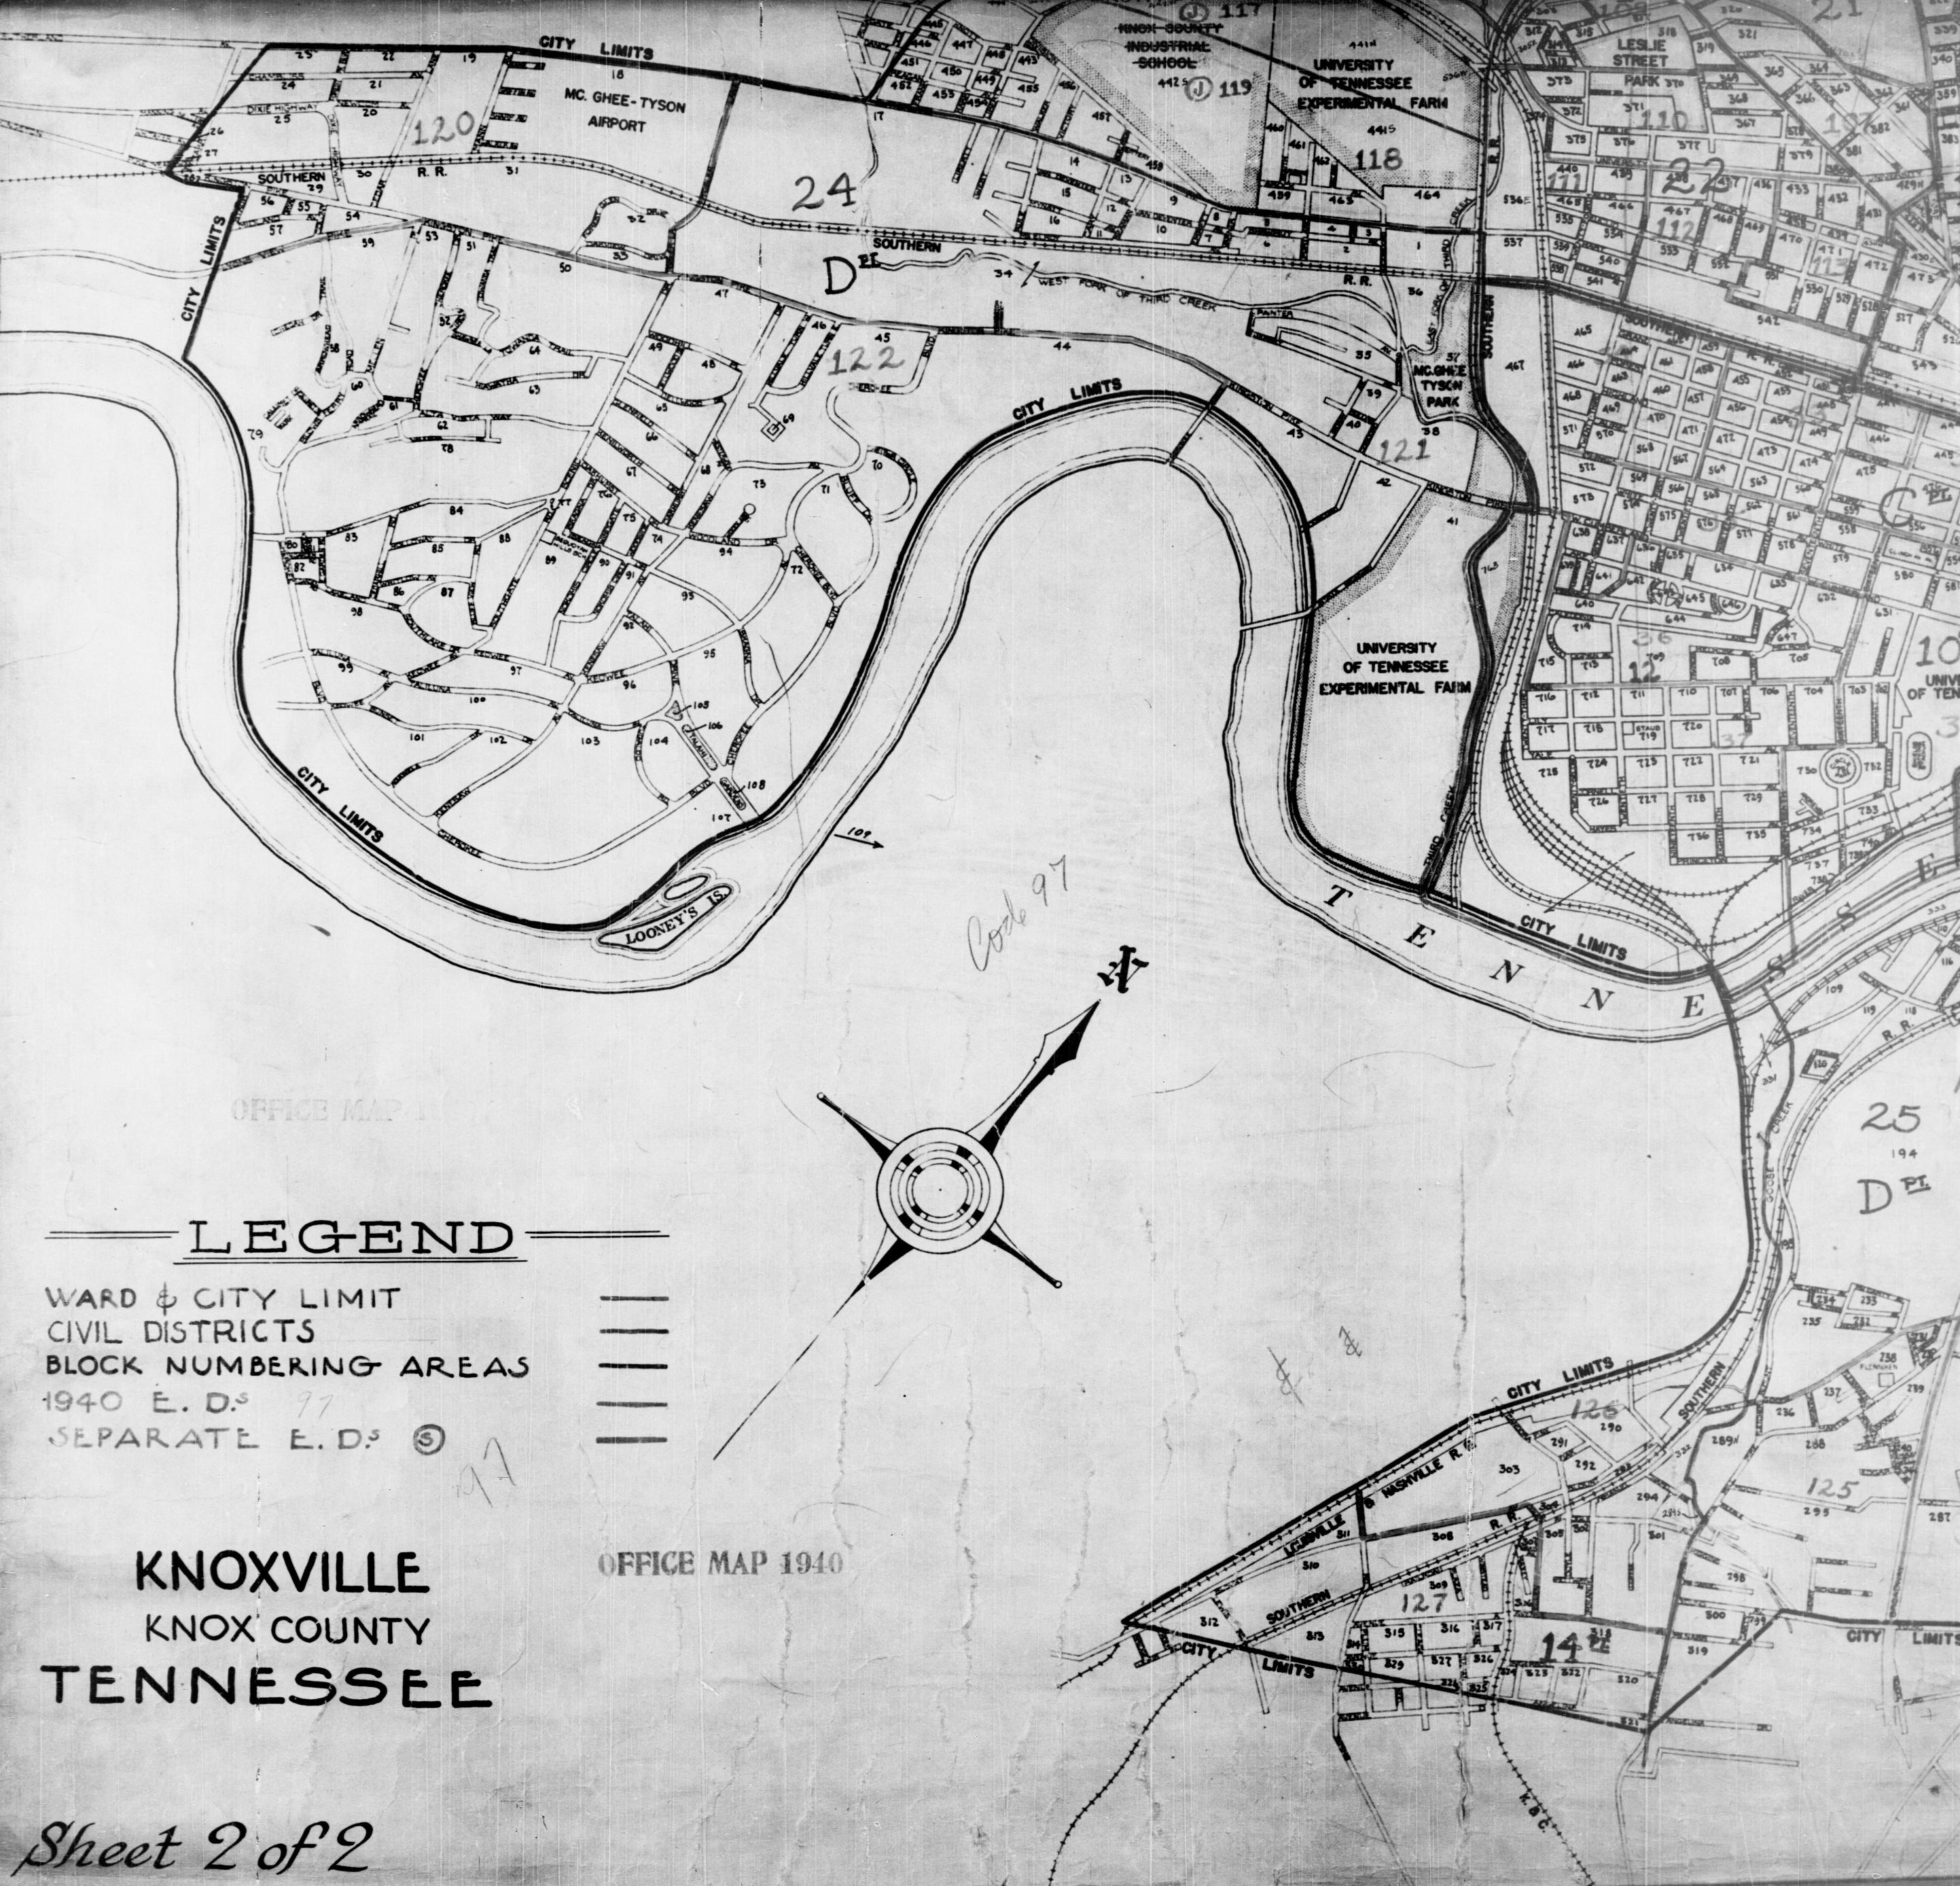 File:Knoxville-1940-census-map-tn4.jpg - Wikimedia Commons on